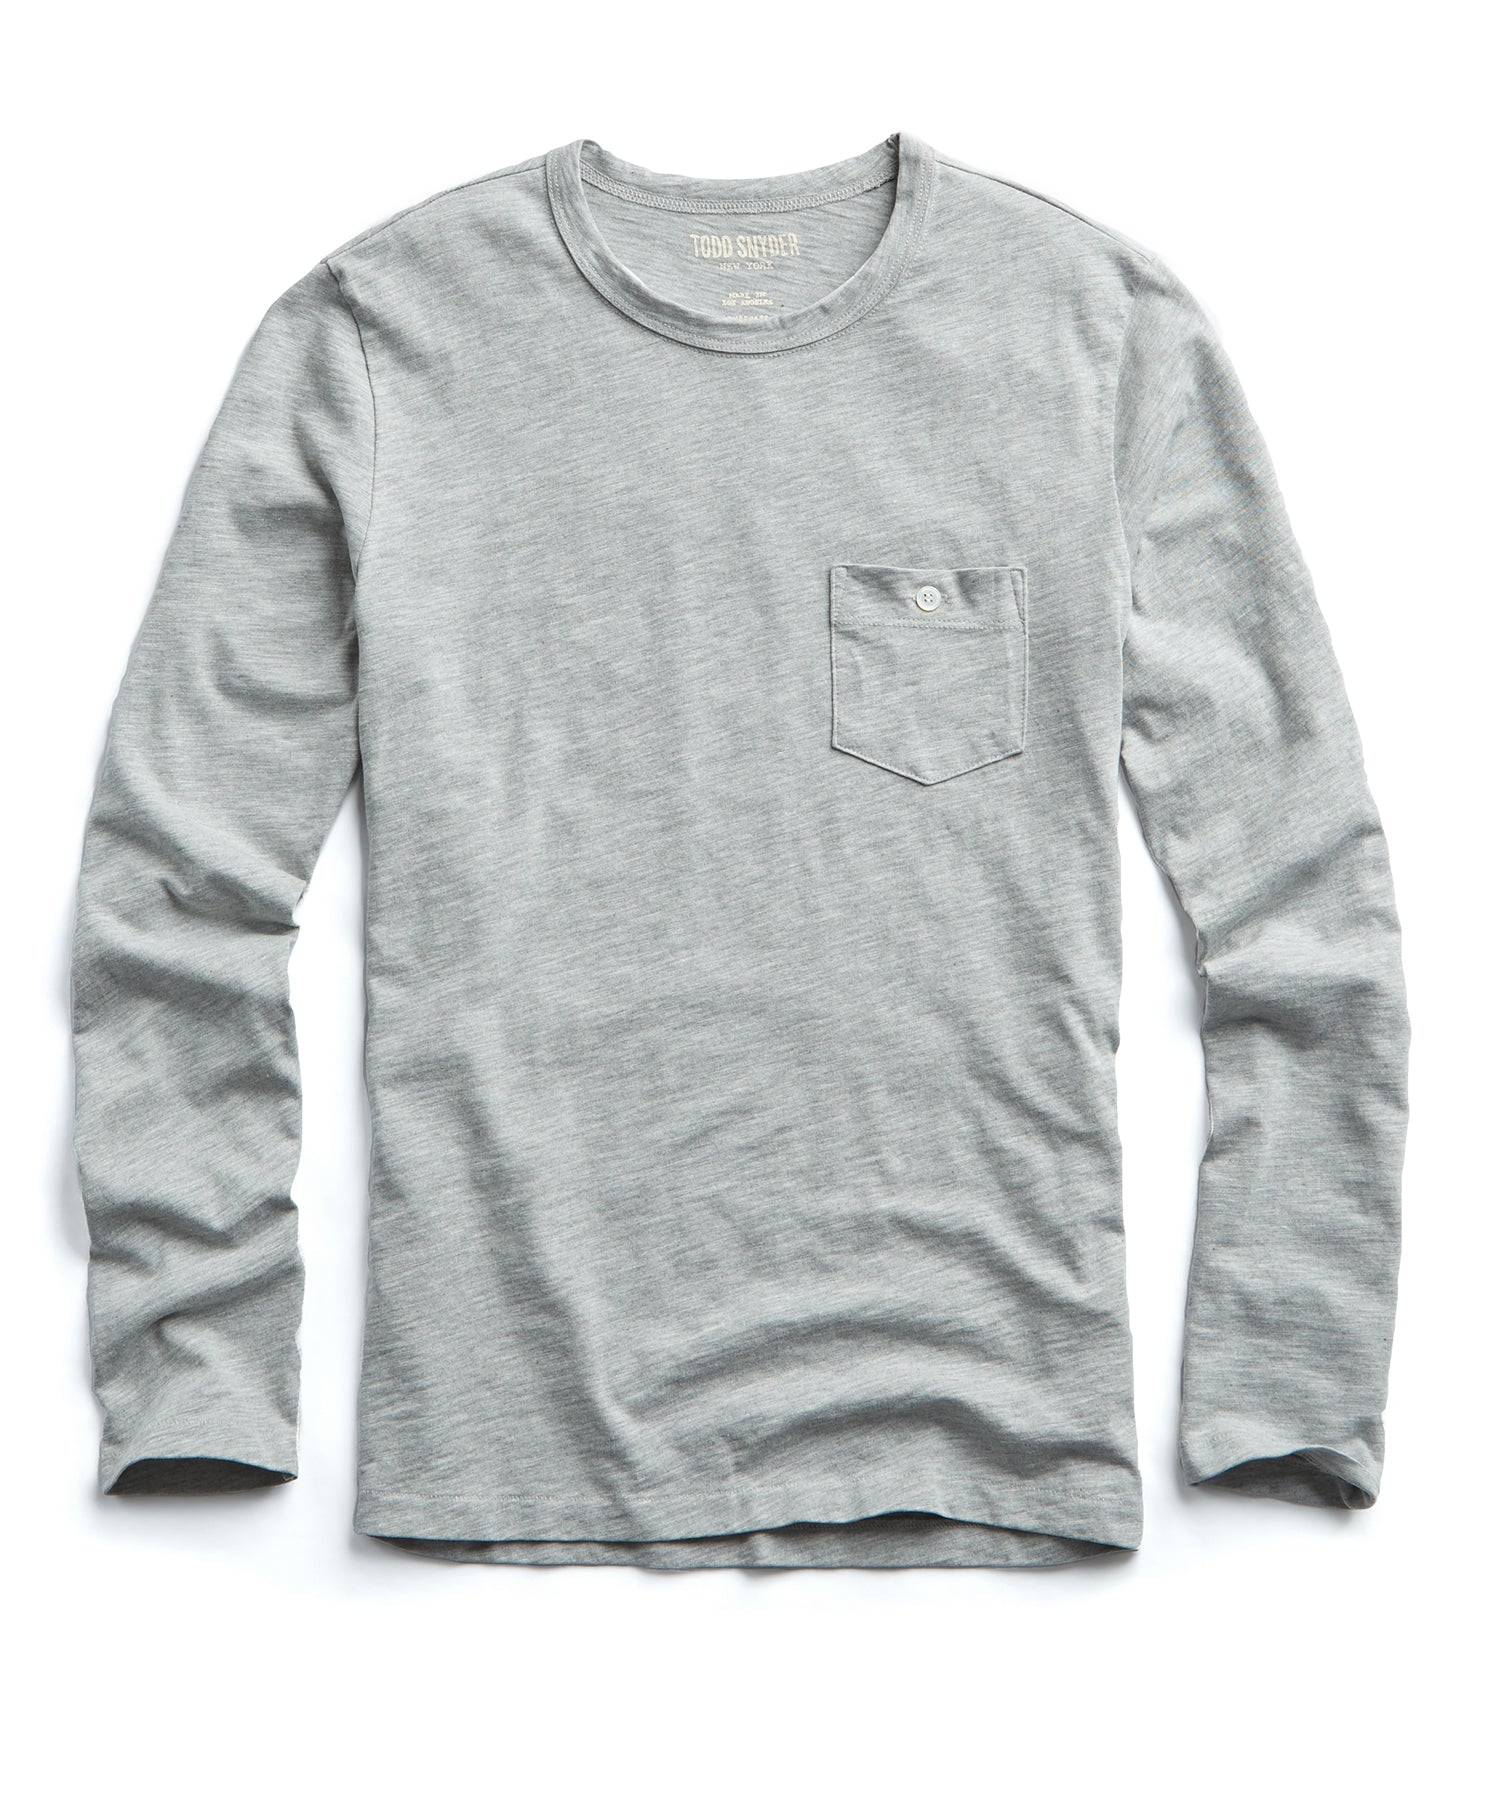 Made in L.A. Slub Jersey Long Sleeve T-Shirt in Grey Heather